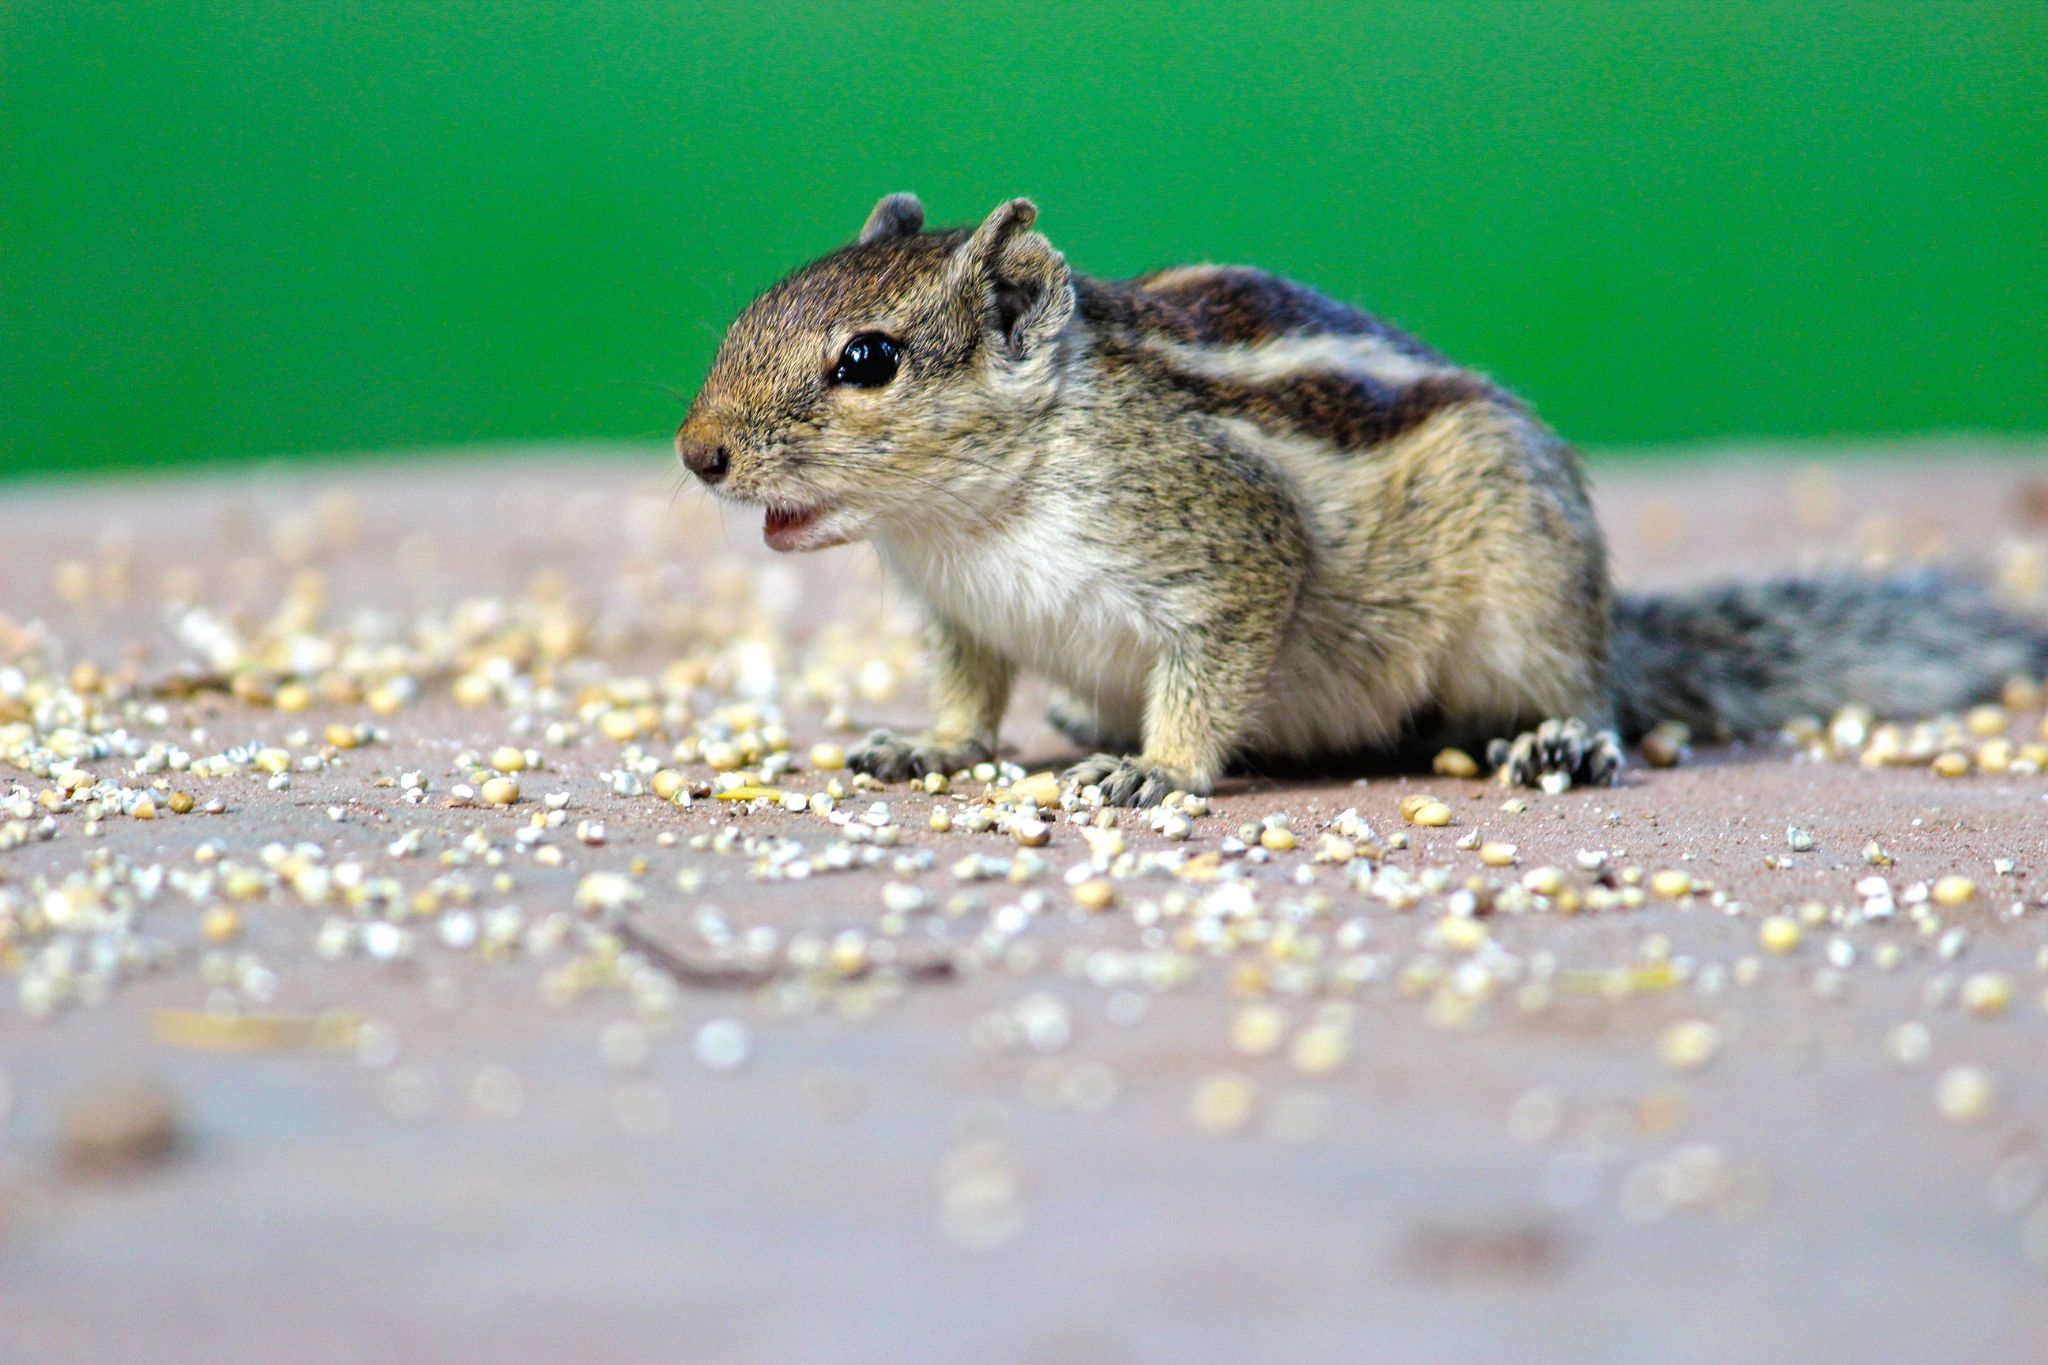 Squirrel in Action by Suprit